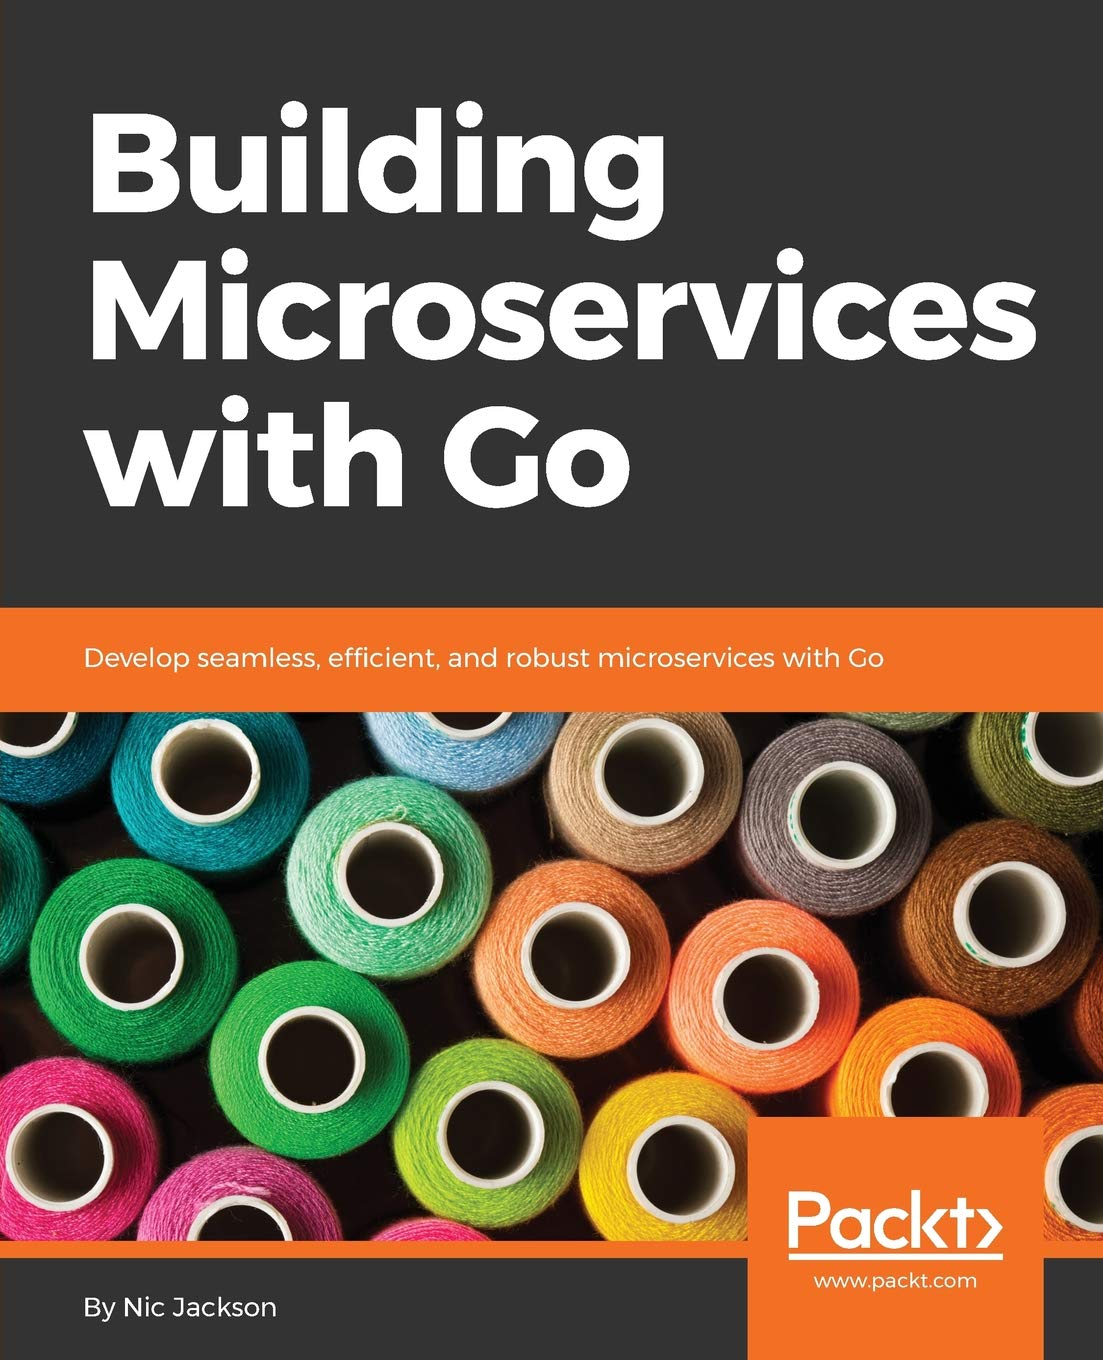 Building Microservices with Go: Amazon in: Nic Jackson: Books